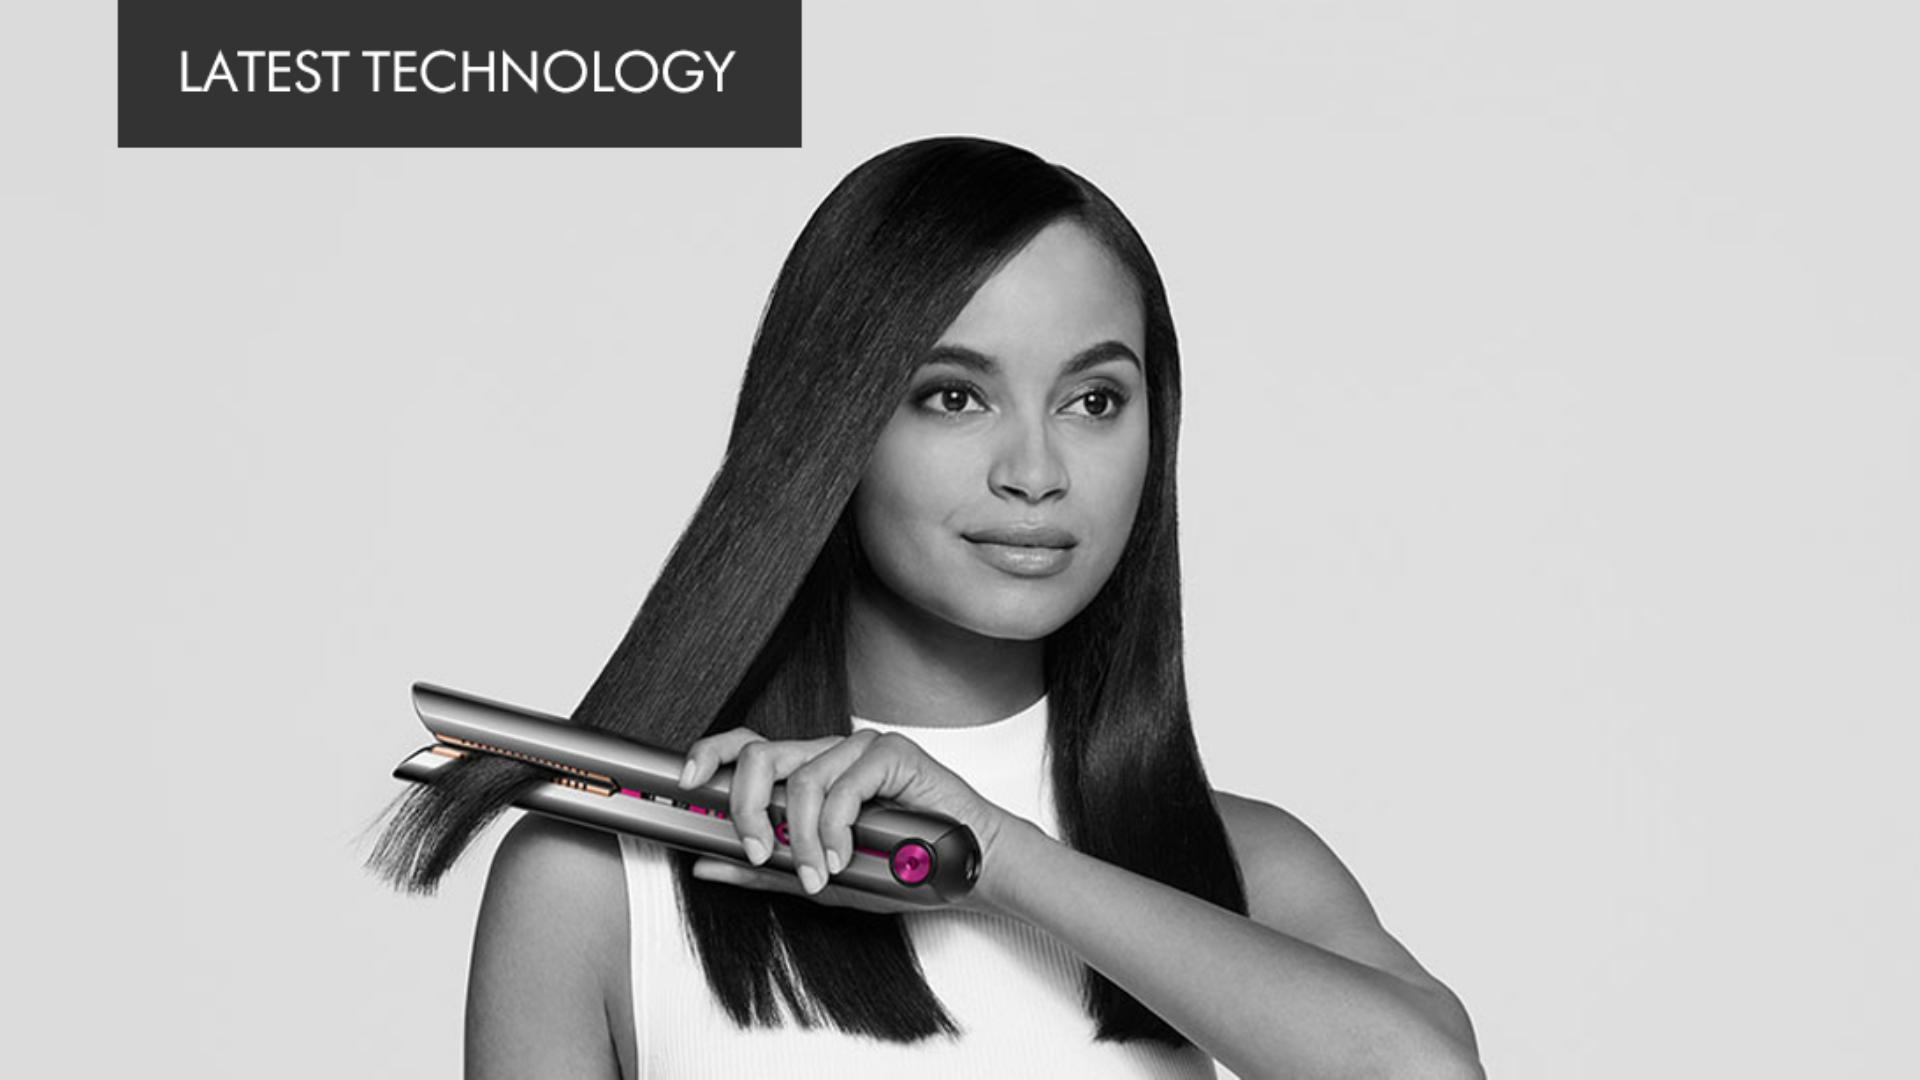 A model using the Dyson Corrale straightener